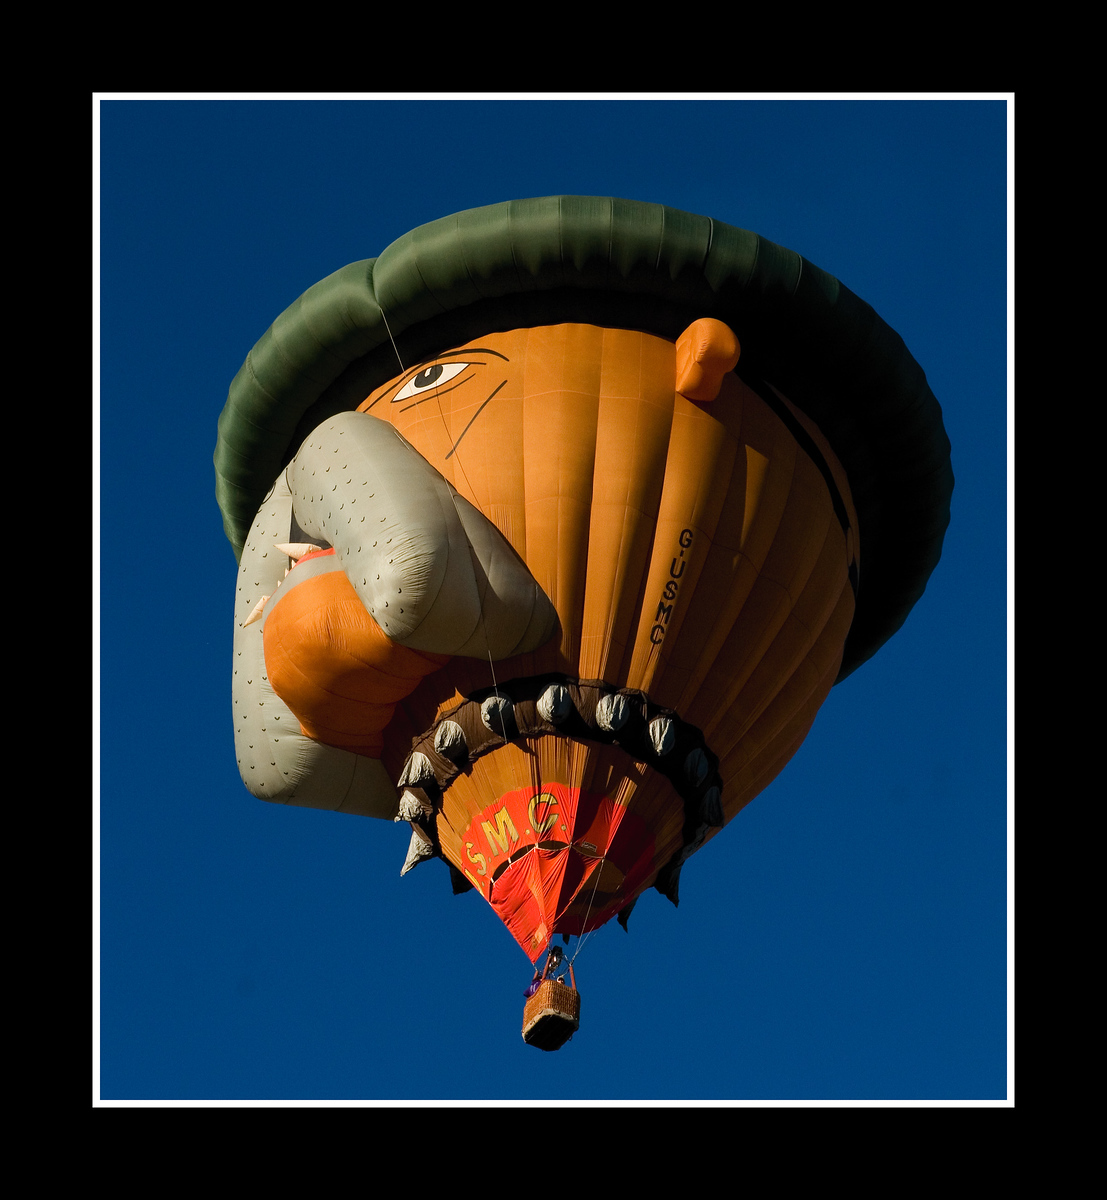 IMAGE: https://photos.smugmug.com/Travel/ALBUQUERQUE-BALLOON-FIESTA/i-gWxFnN5/0/4e39f7e6/X3/JPEG%20Albq%20balloons%206230%20-X3.jpg